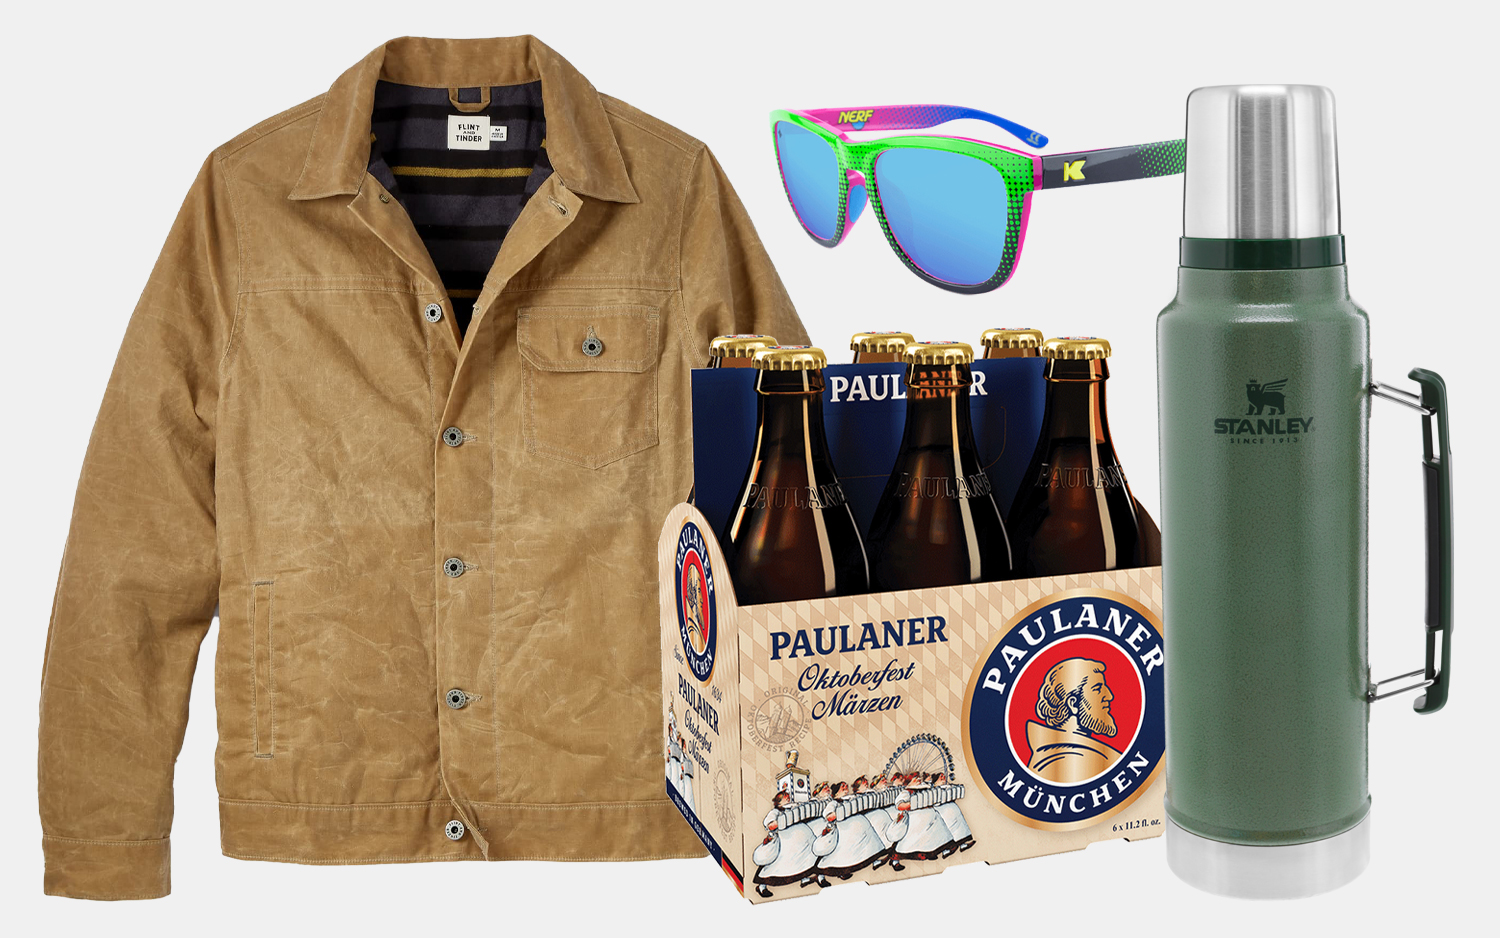 15 Things Every Man Needs for tailgating